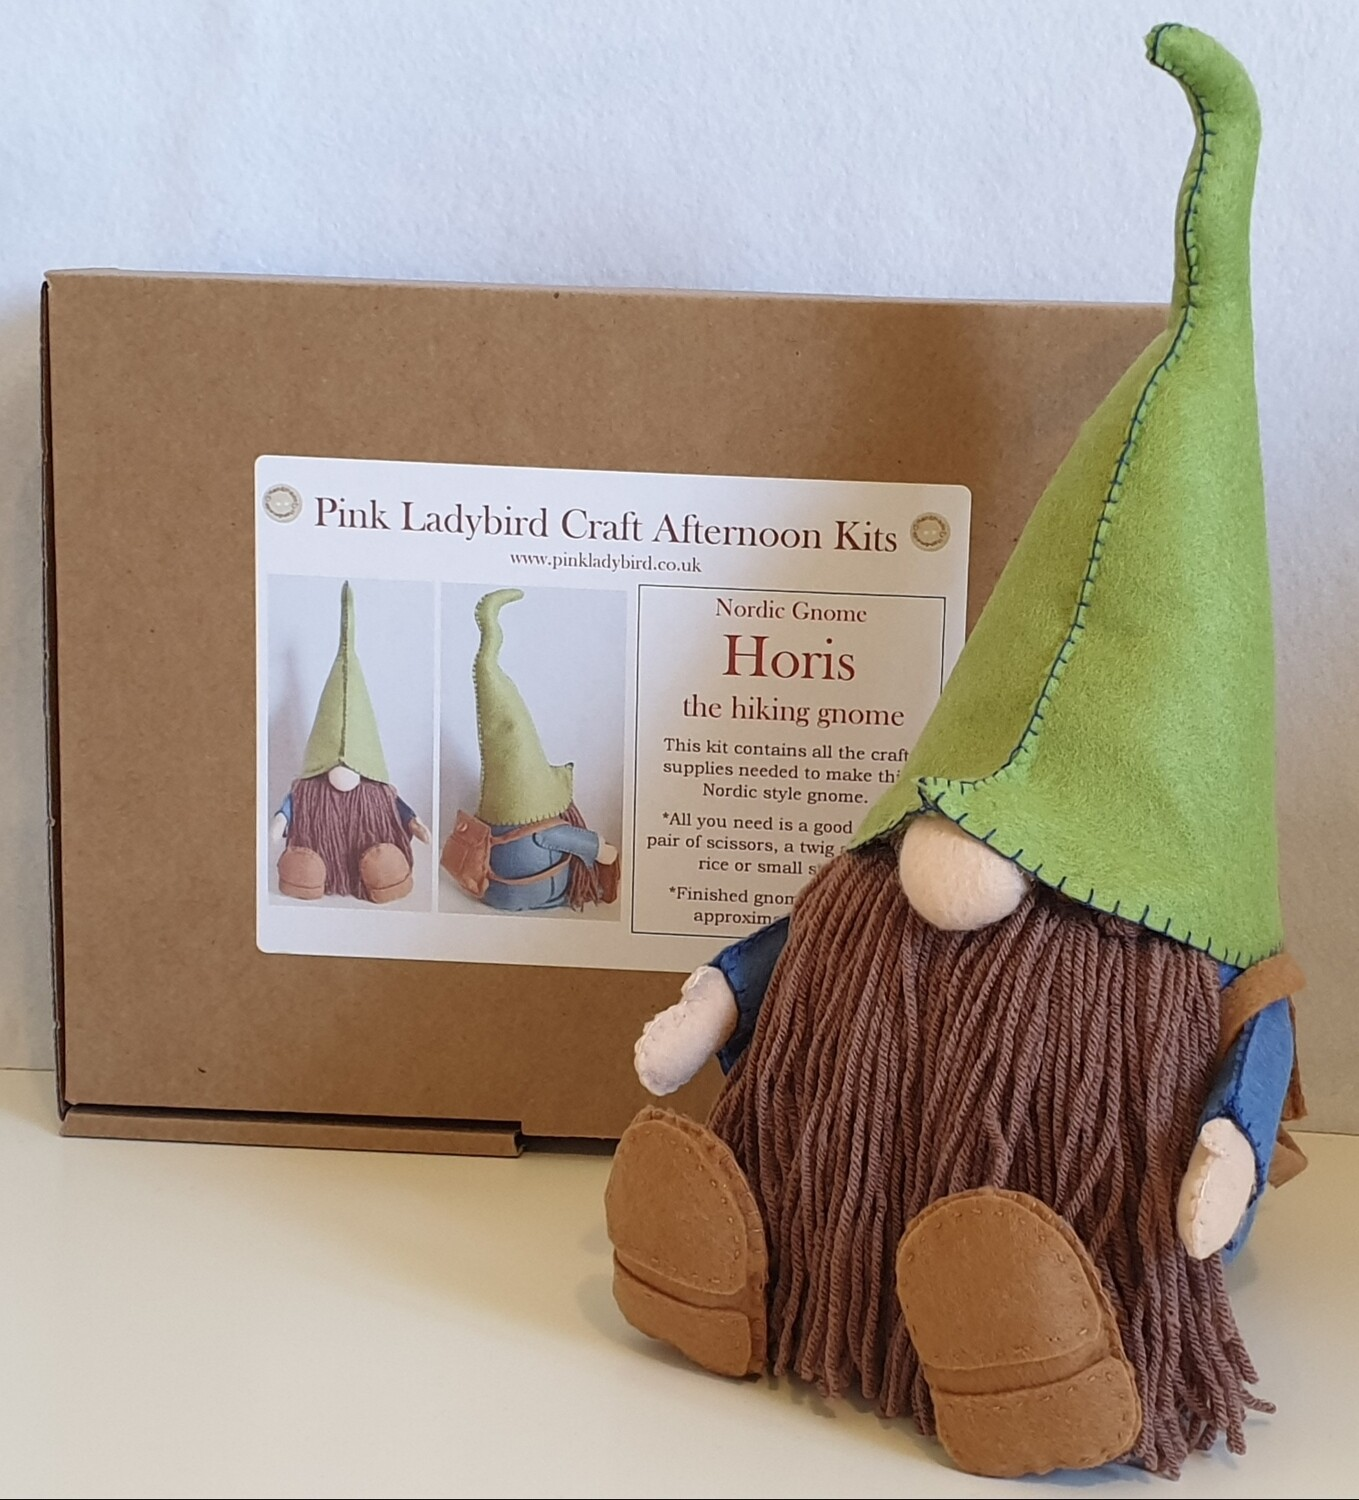 Craft Afternoon Kit - Horis the hiking gnome